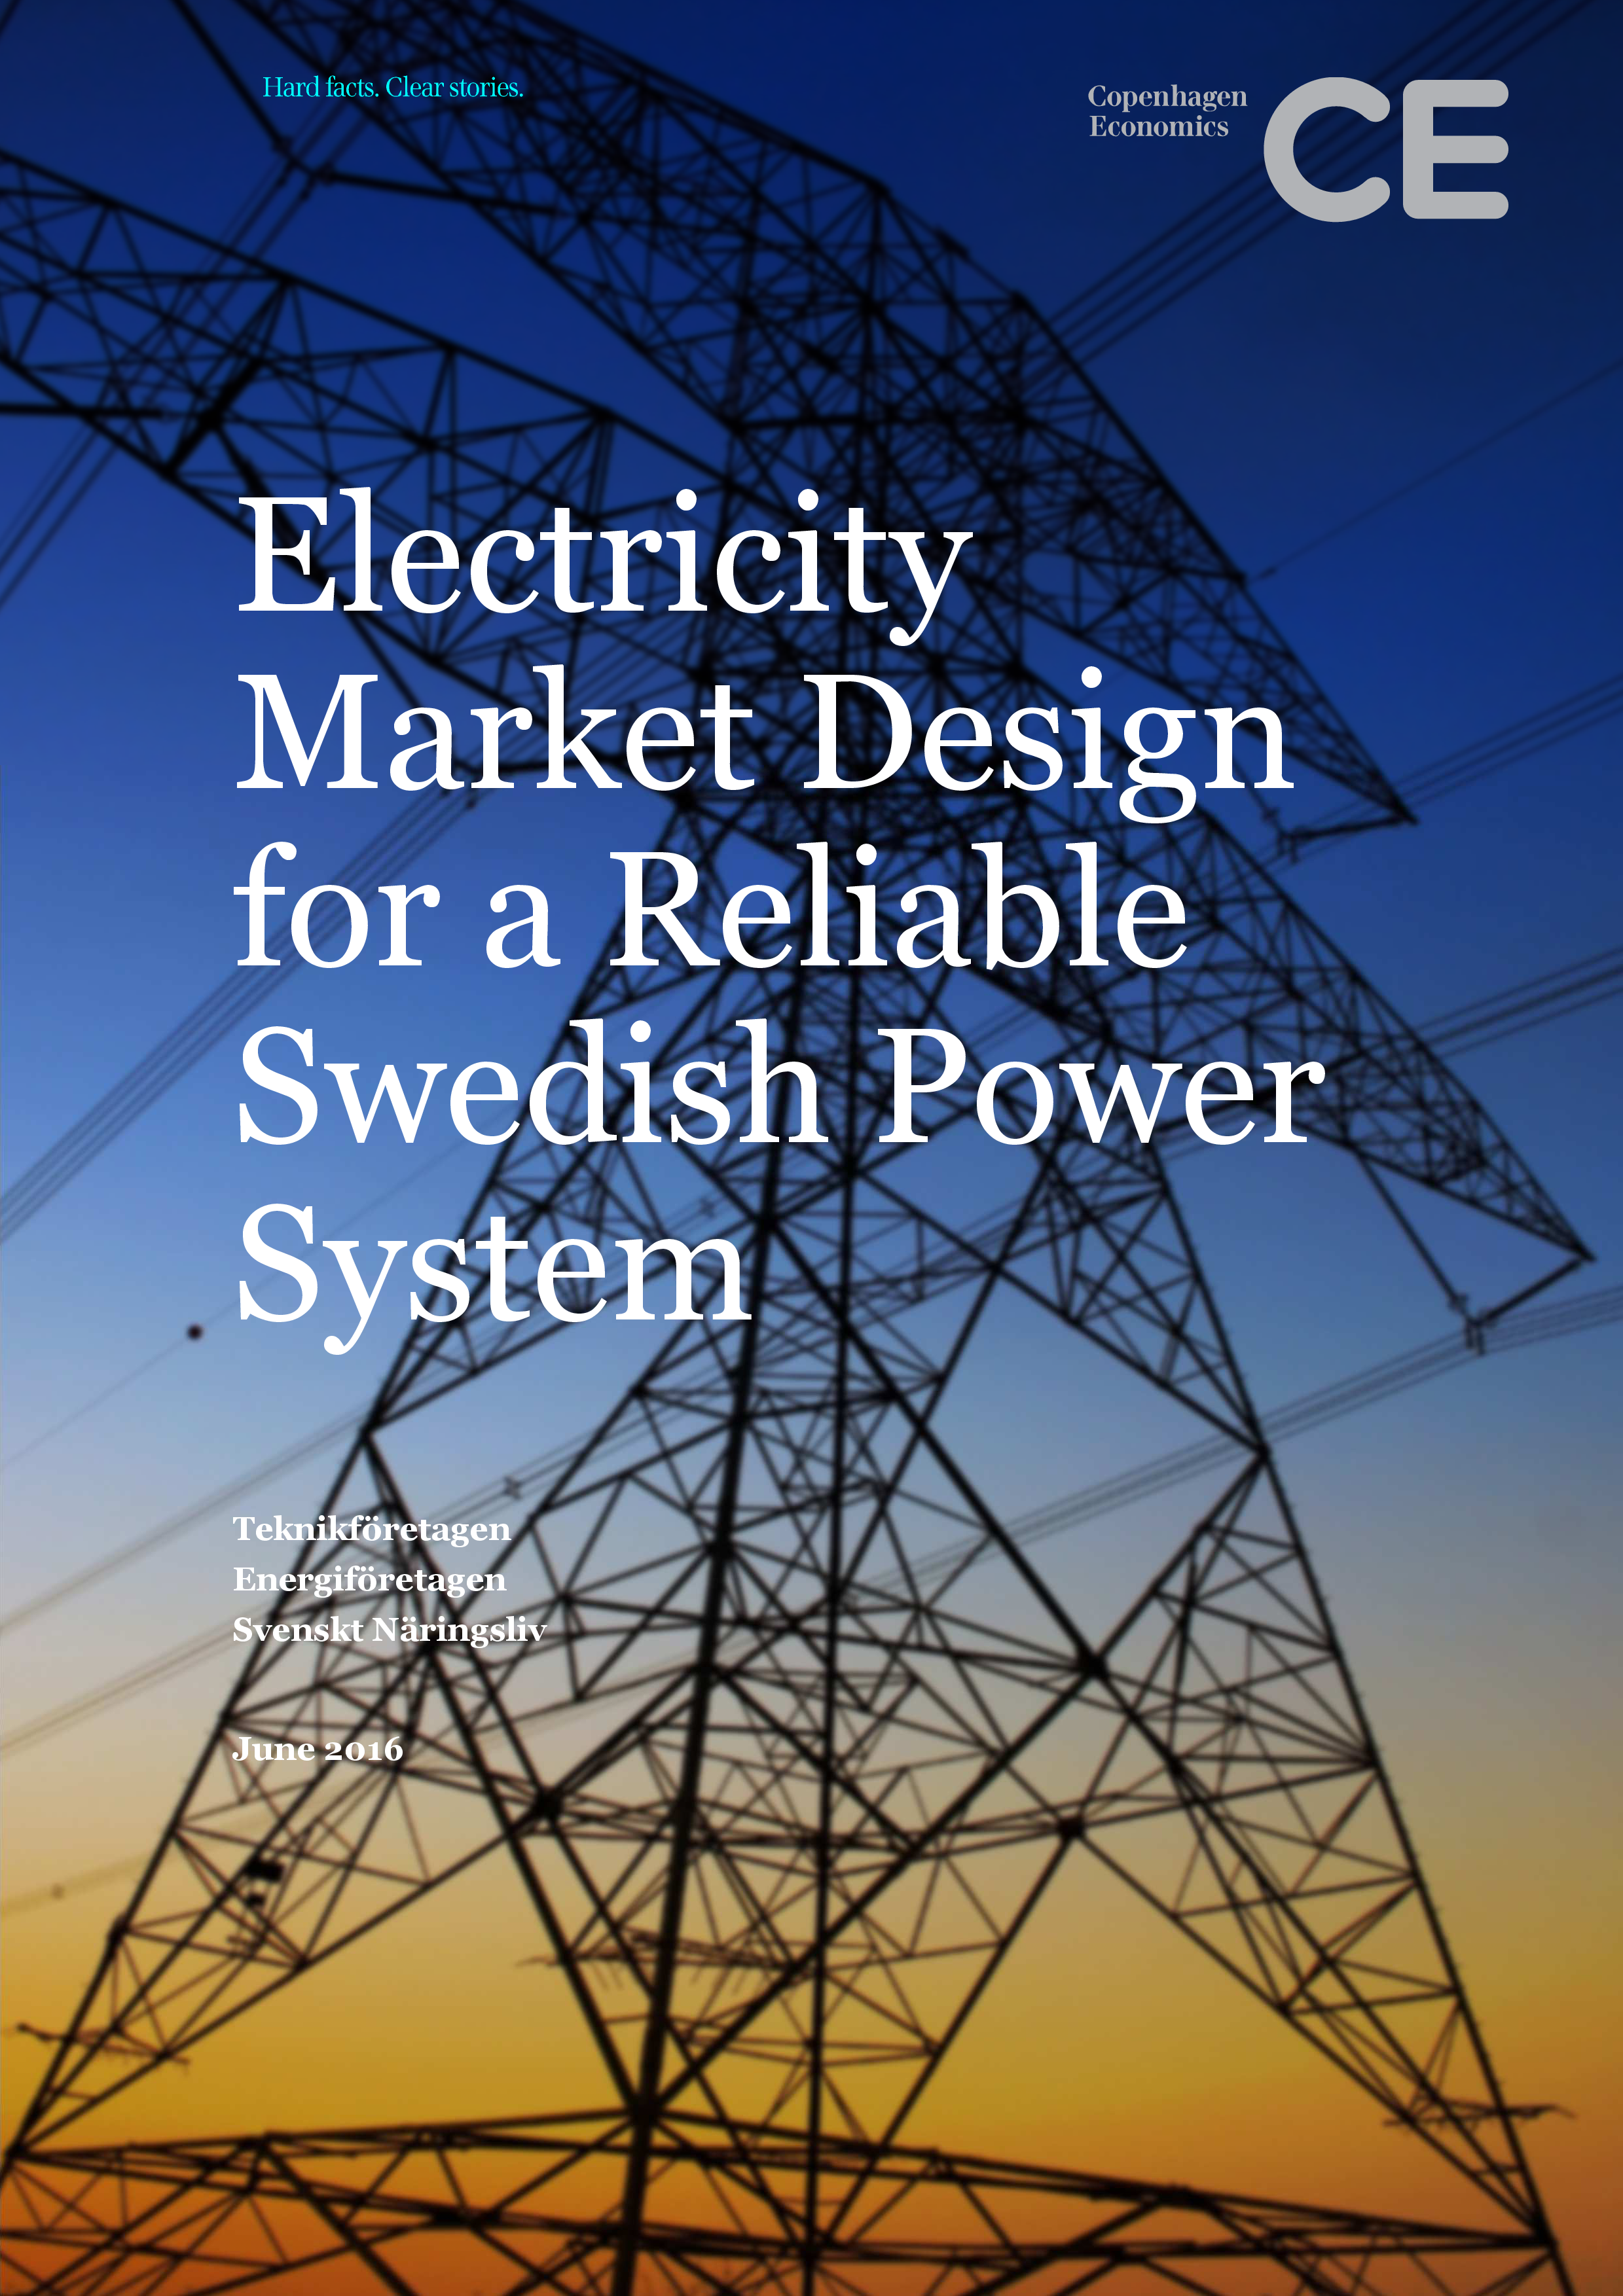 Electricity Market Design for a Reliable Swedish Power System